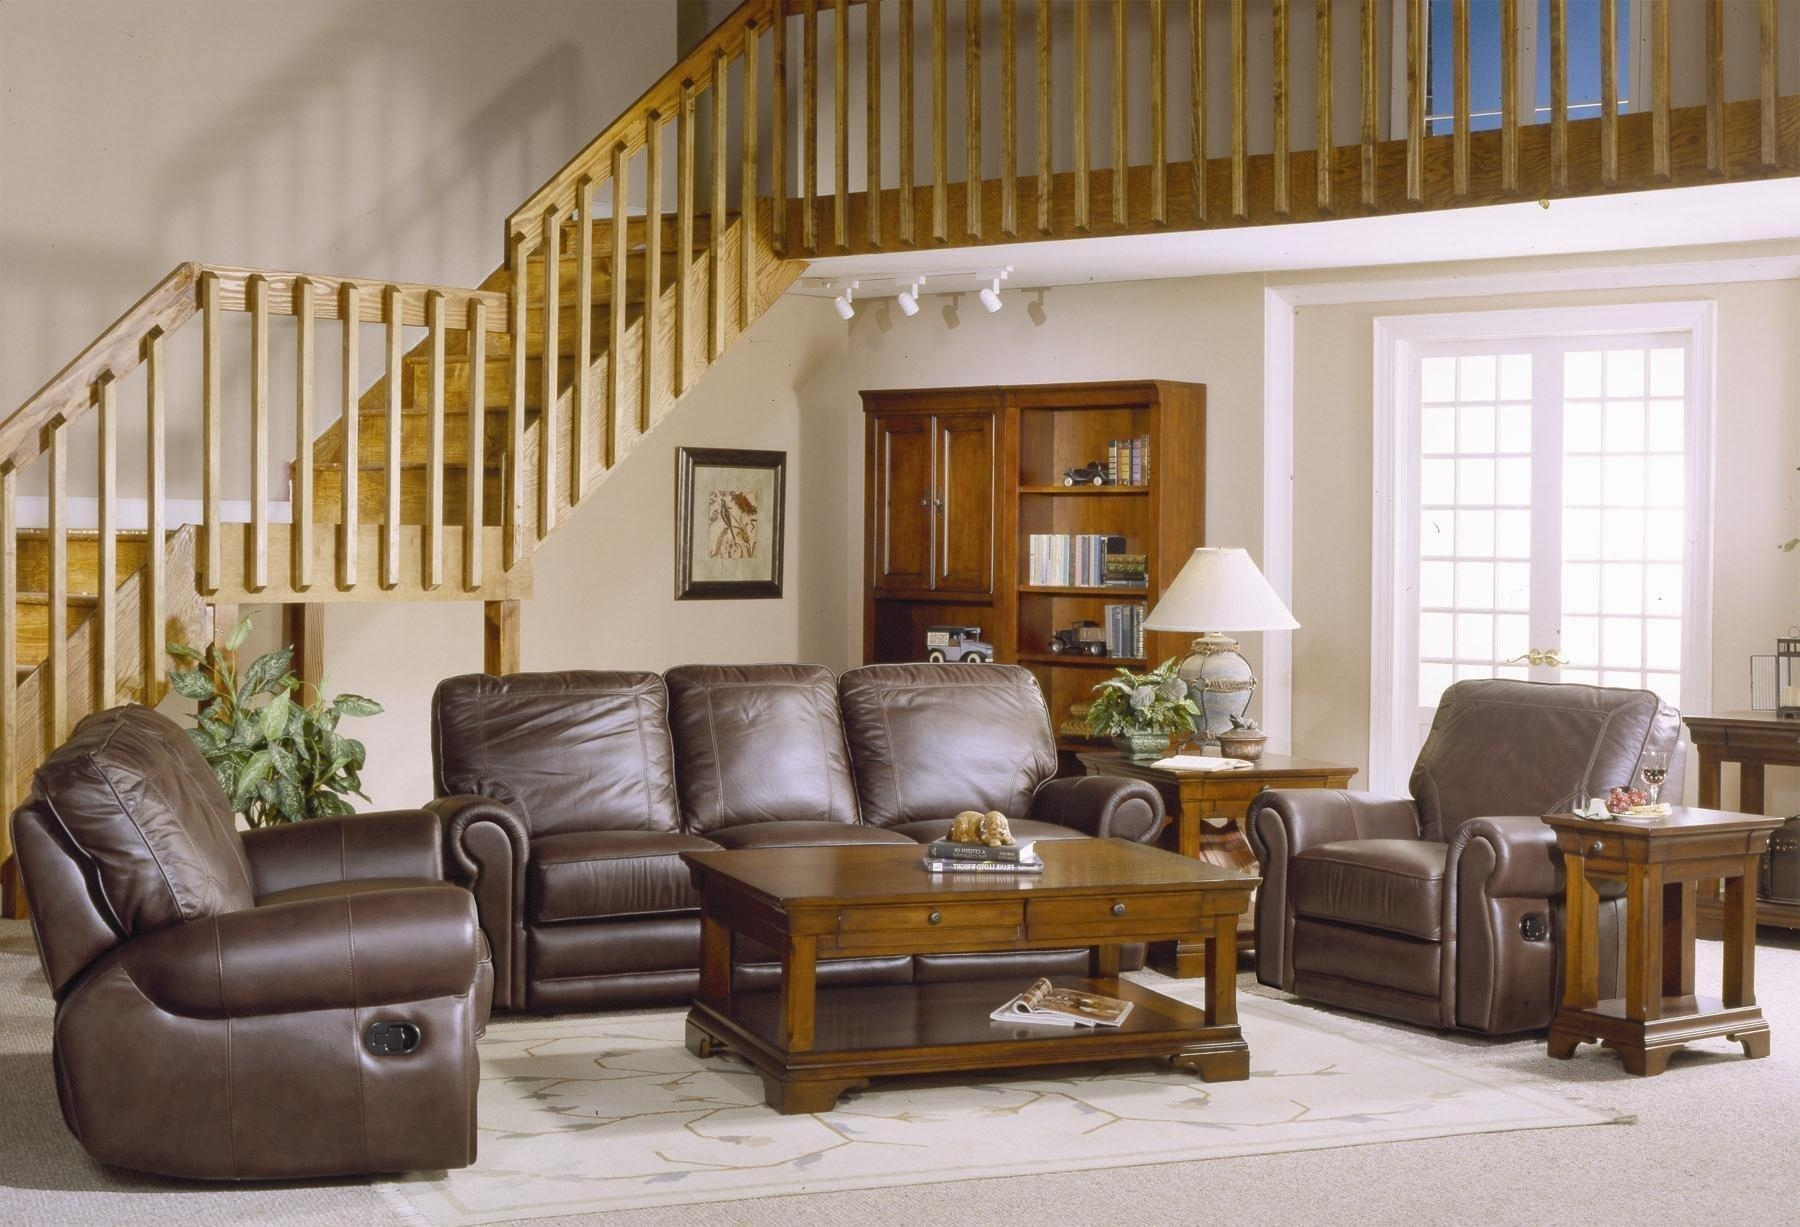 Sofas Center : Frightening Country Style Sofas Image Inspirations Pertaining To Country Cottage Sofas And Chairs (View 8 of 20)